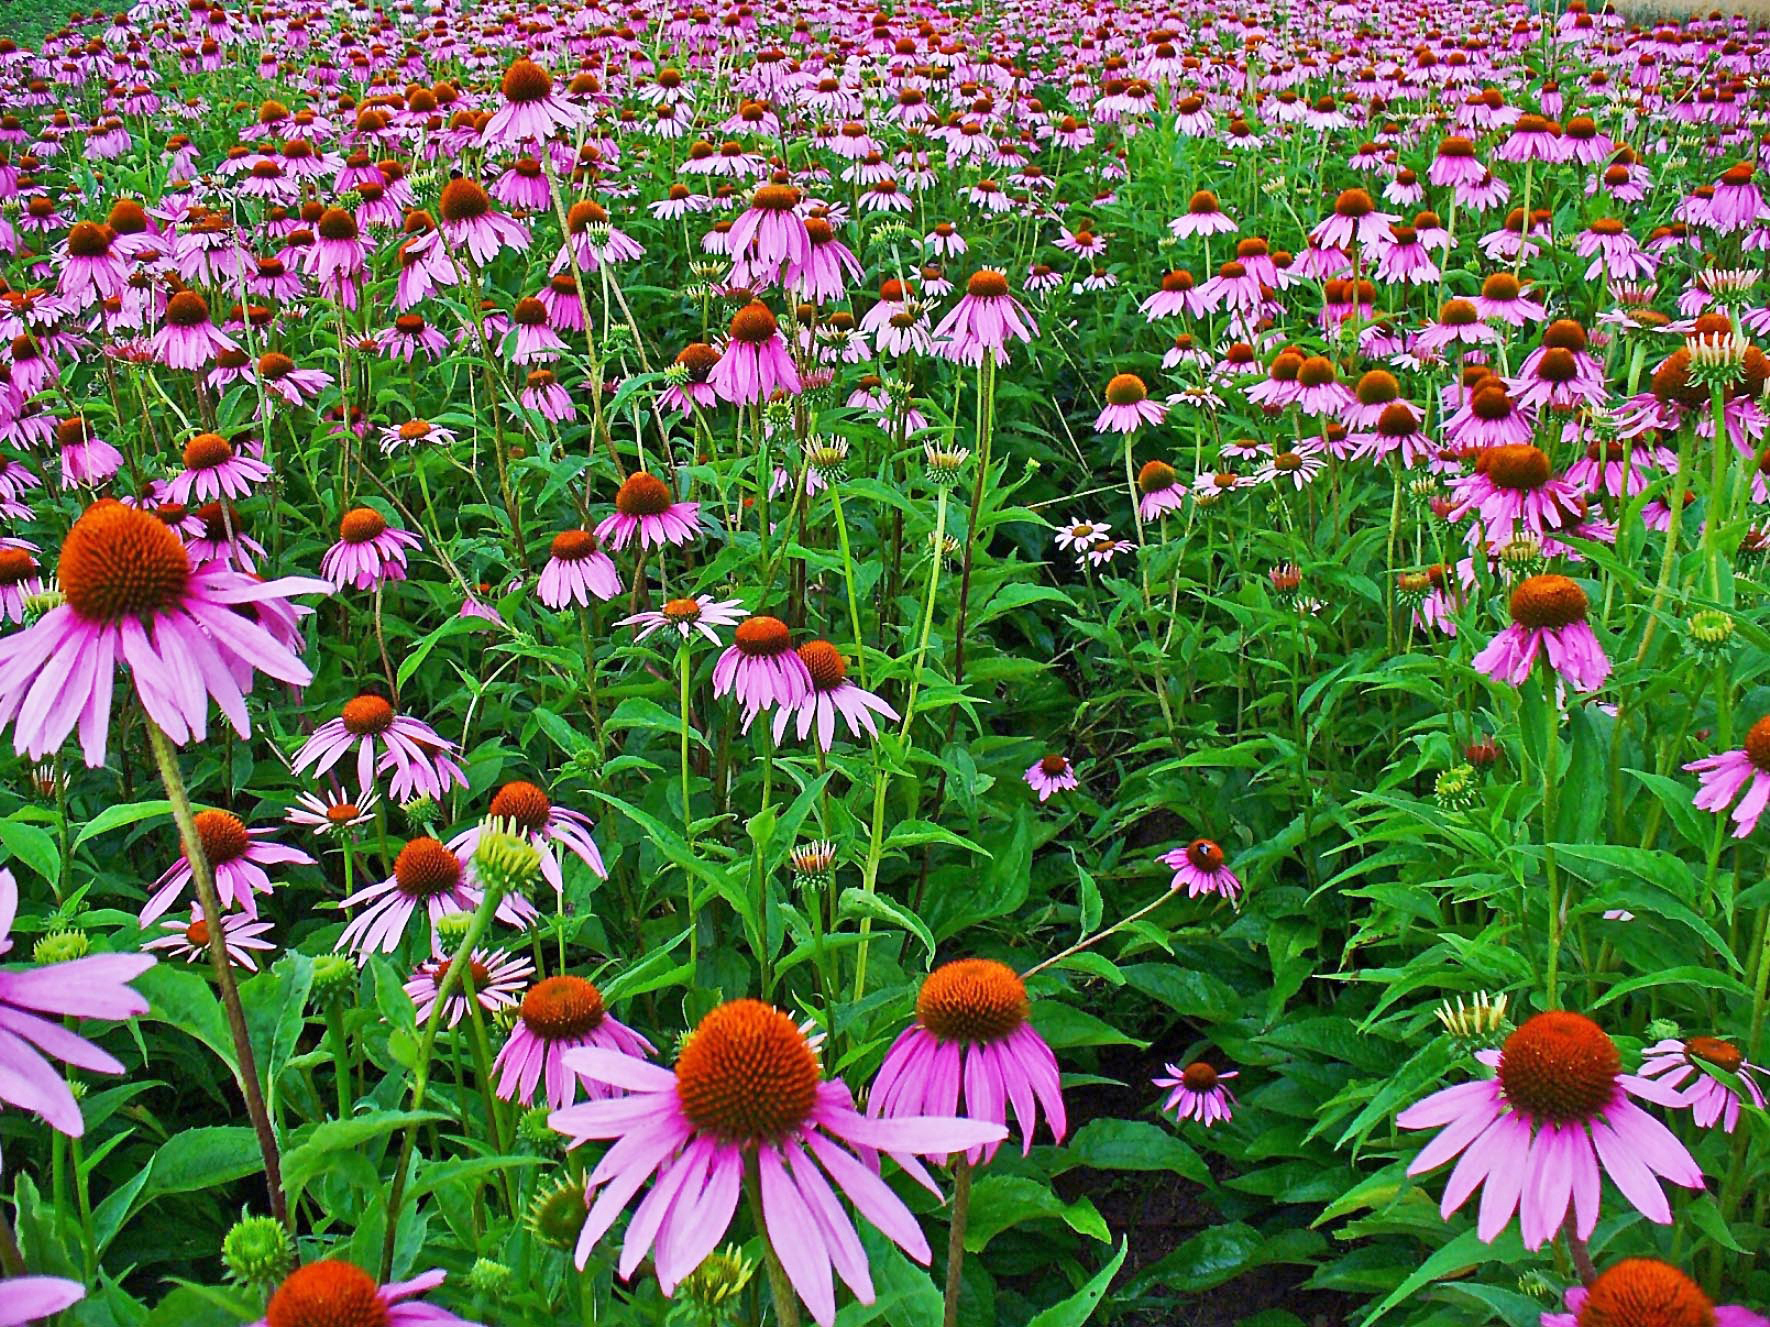 Field of Echinacea (cone flower)